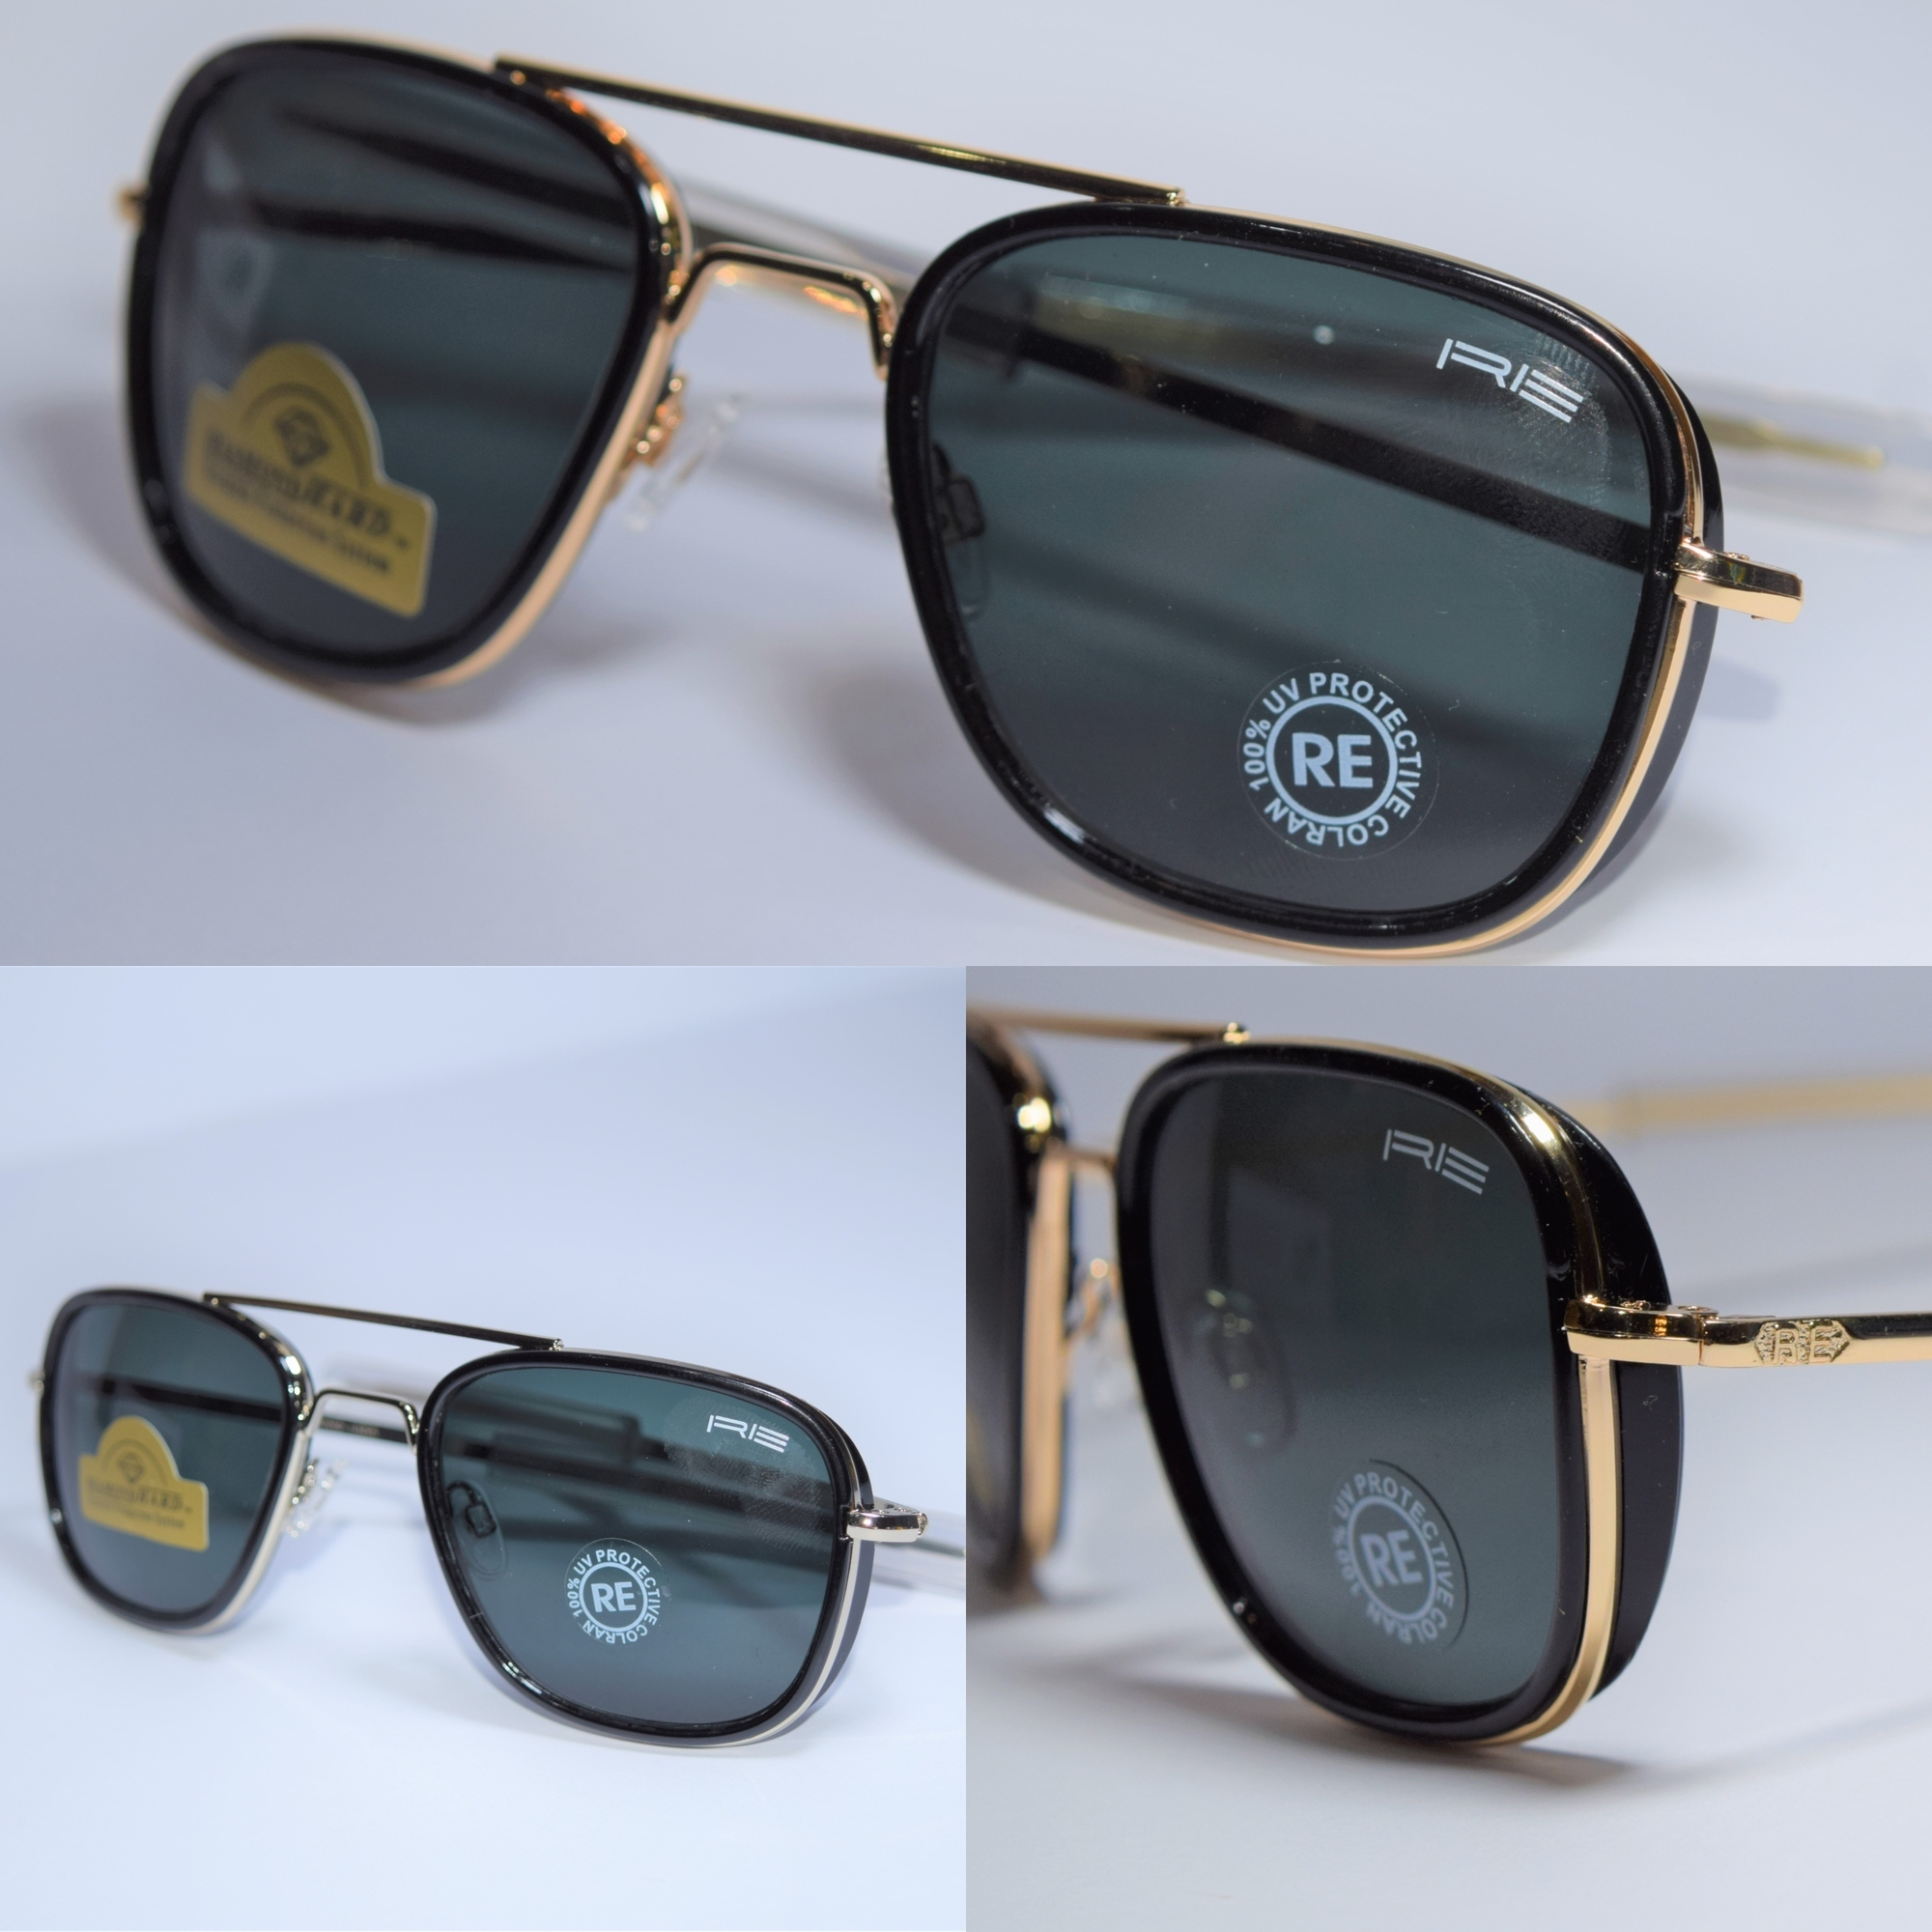 Aviator sunglasses Green And Black Lens in Black, Silver, Golden and grey Frame Available / Men Sunglasses / Aviator sunglasses A+ category.